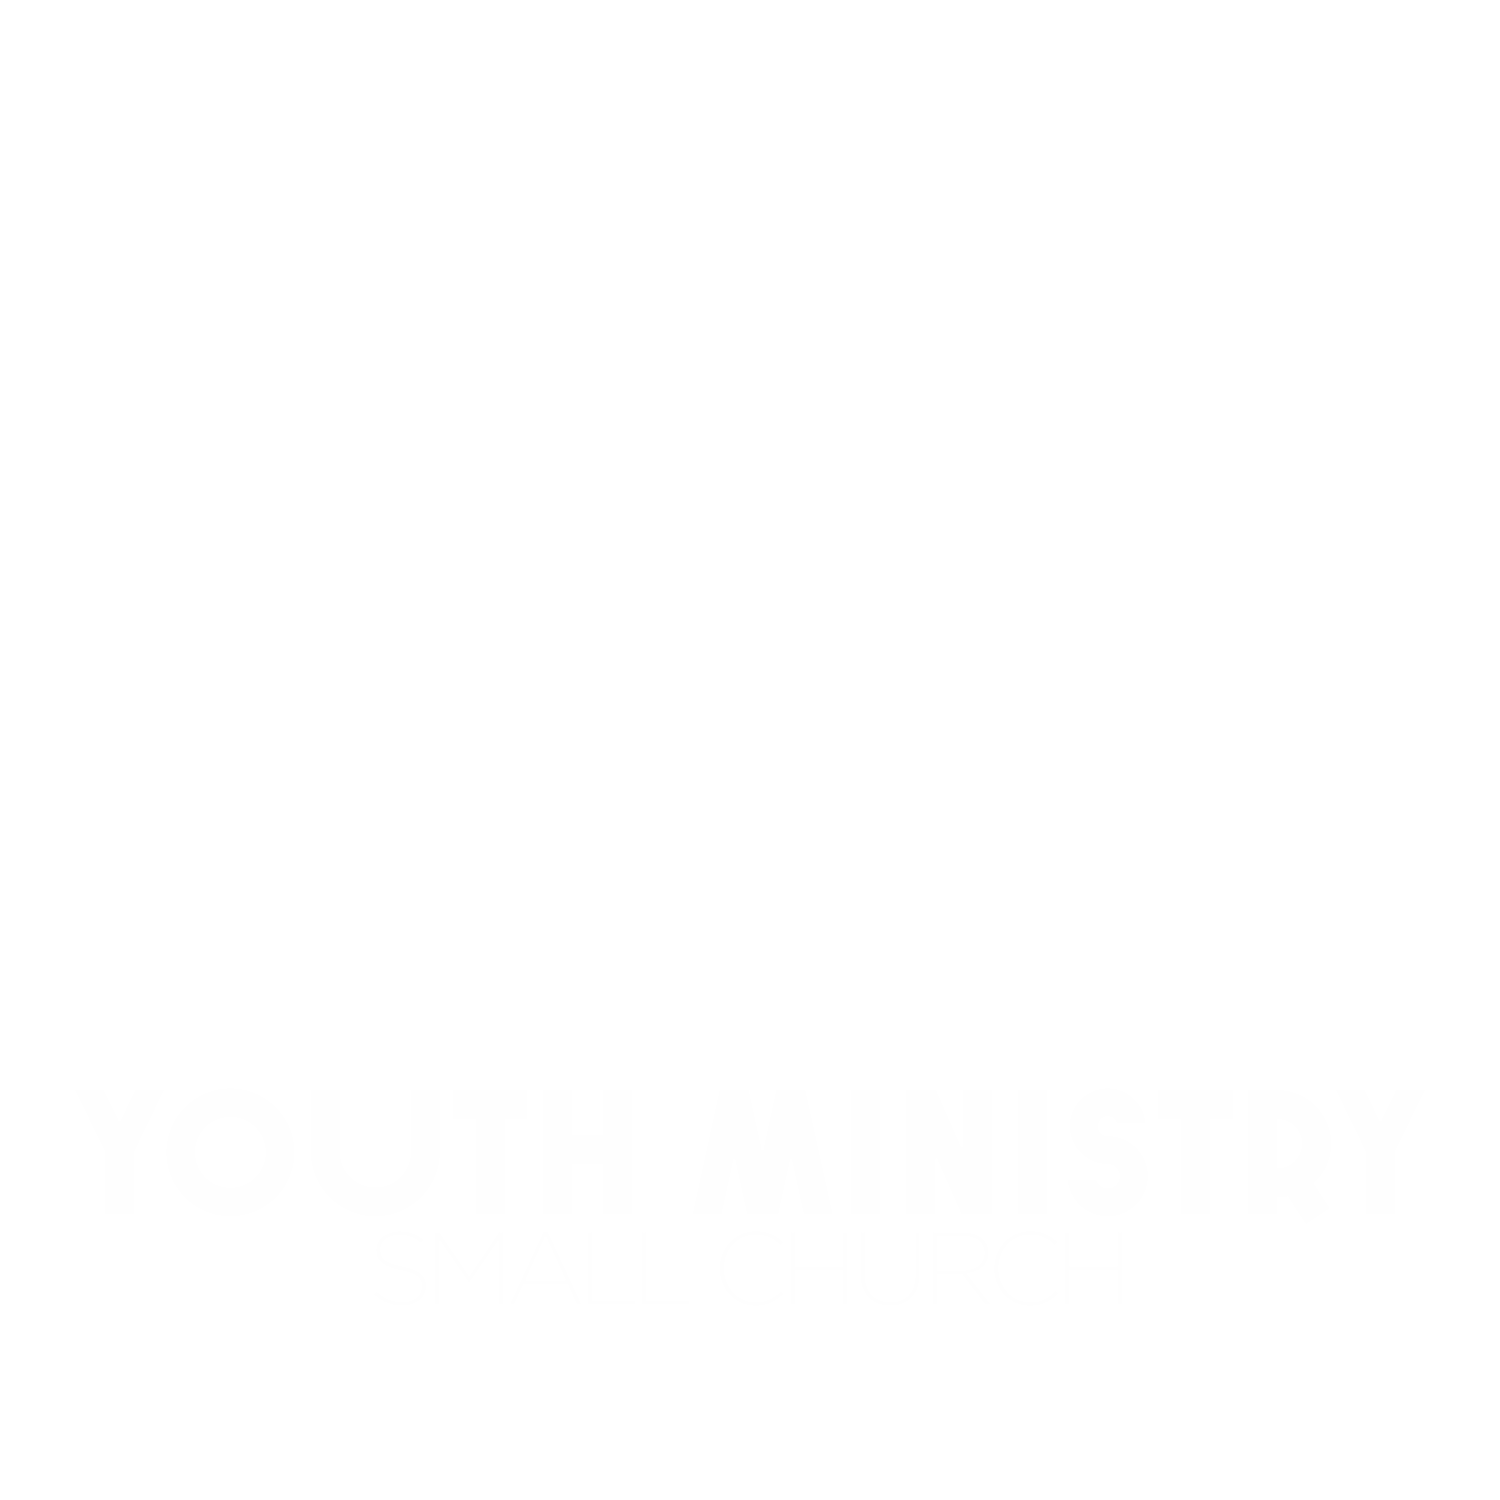 Youth Ministry: Small Church